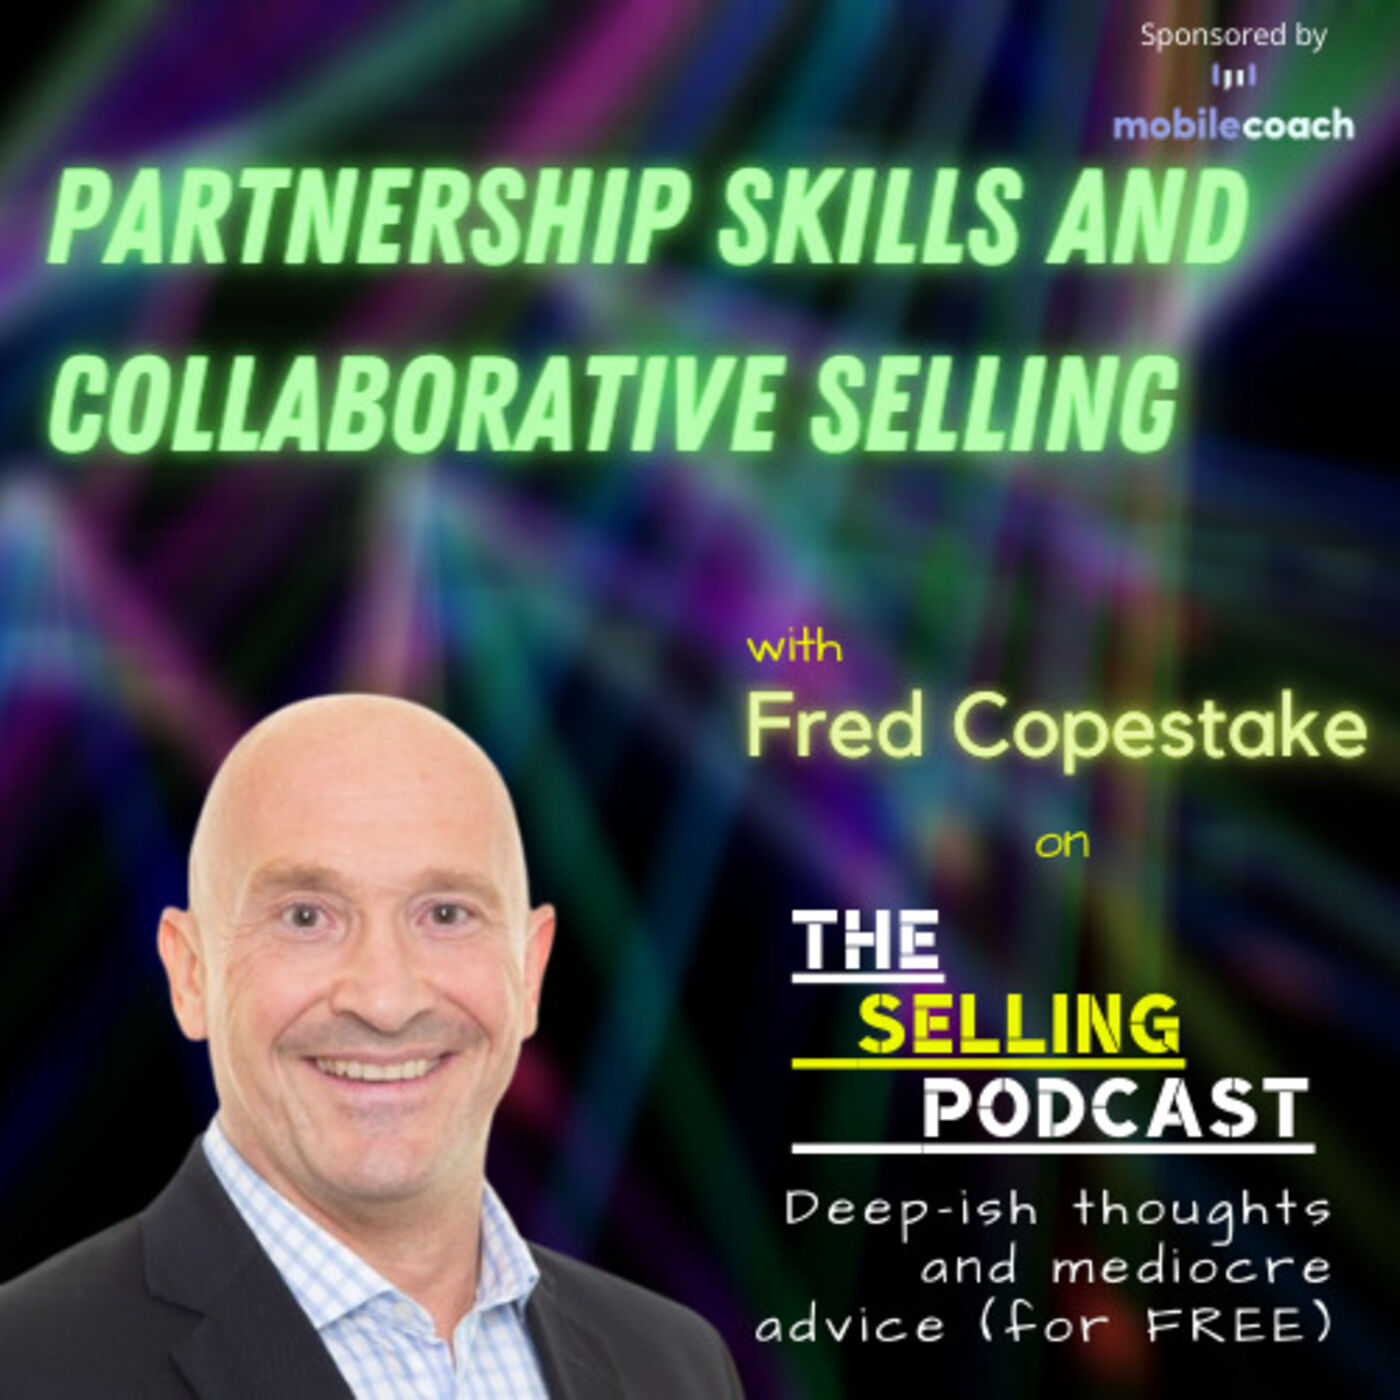 PARTNERSHIP SKILLS AND COLLABORATIVE SELLING WITH FRED COPESTAKE